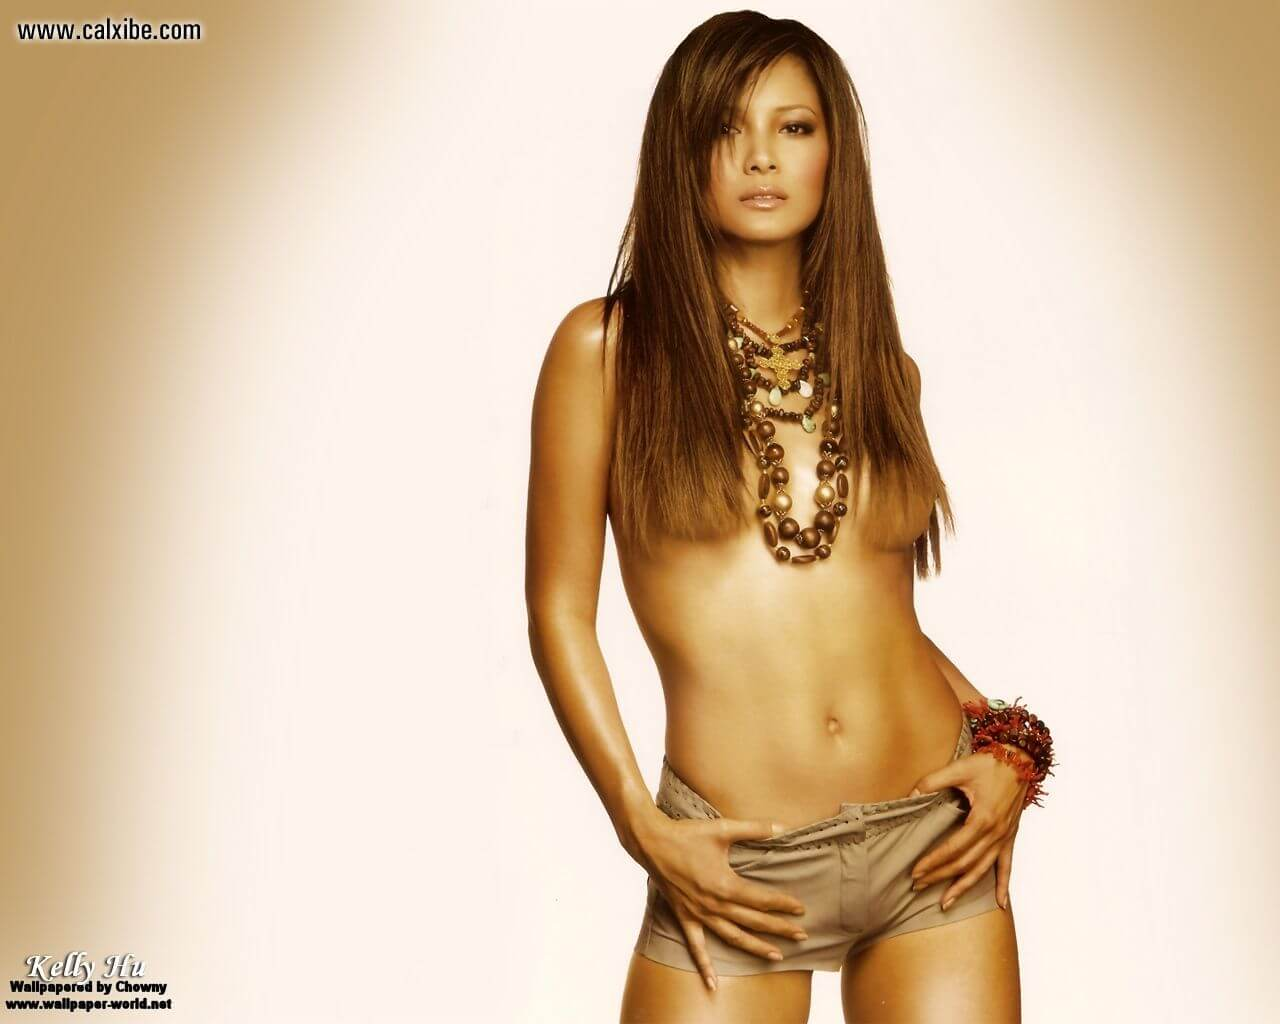 70 Hot Pictures Of Kelly Hu That Will Make You Melt